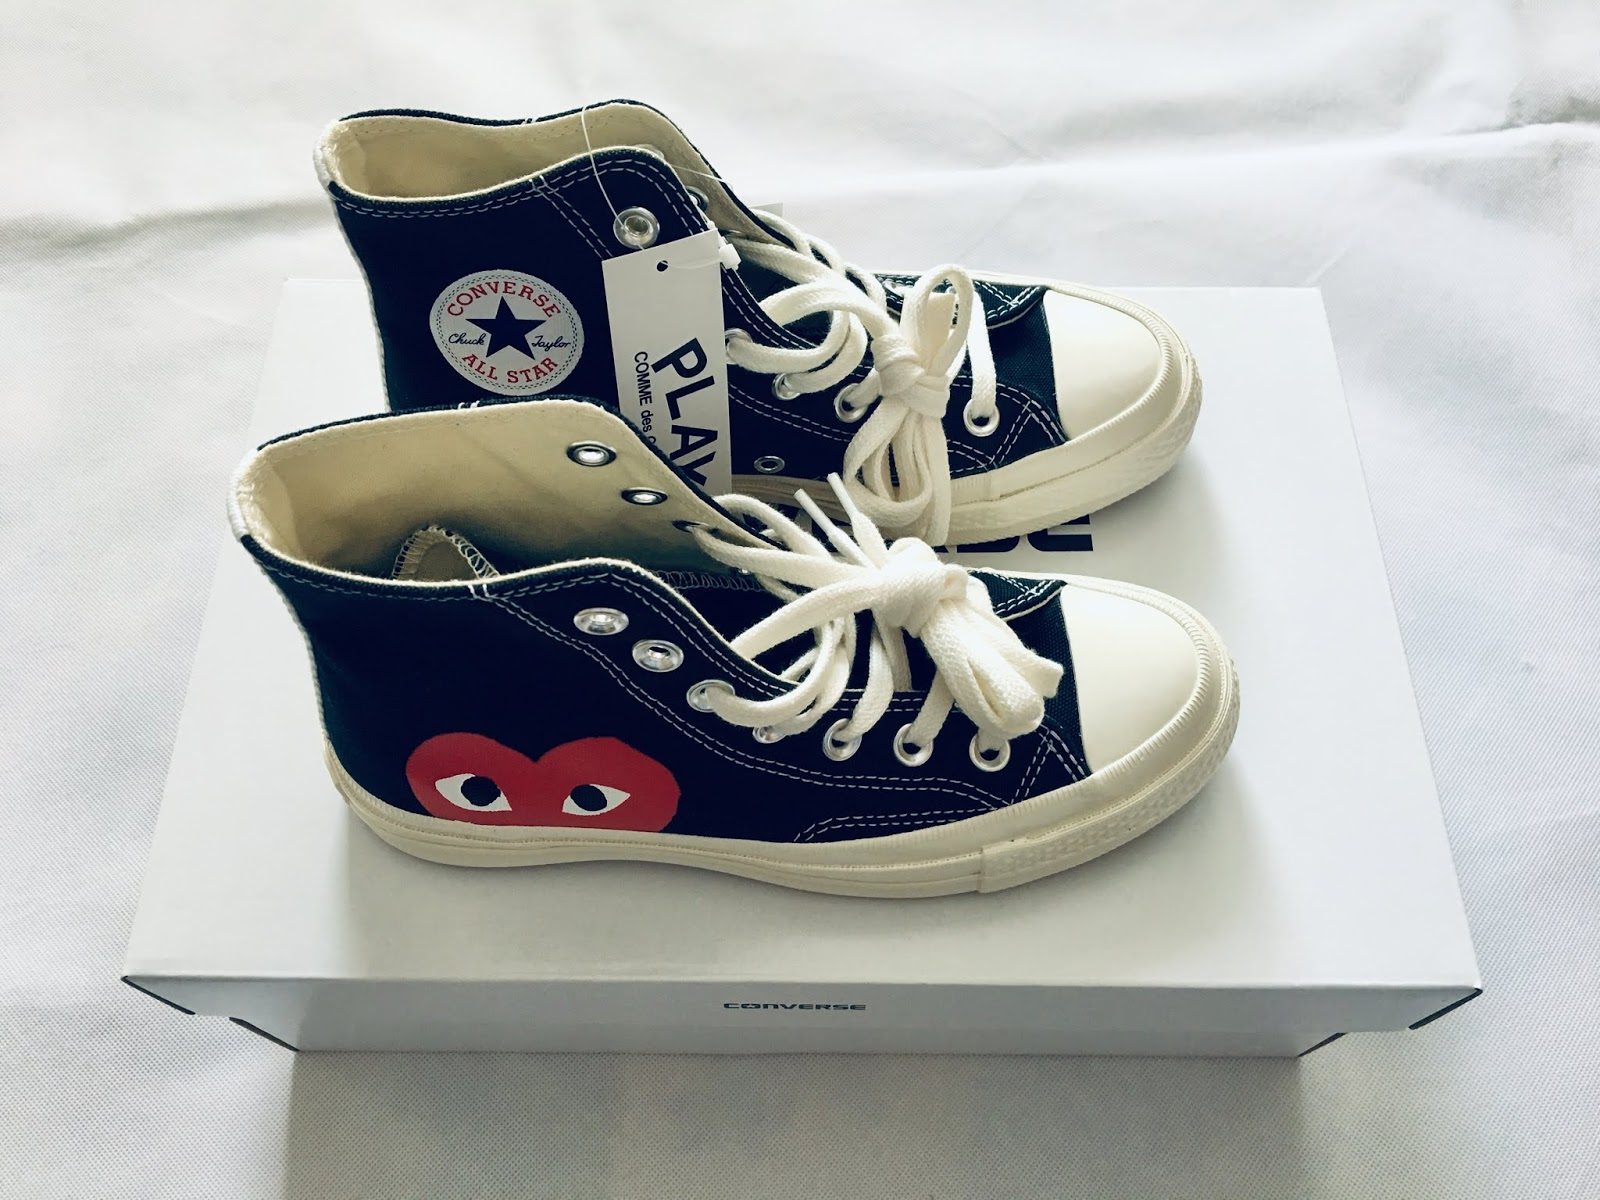 77d580887d7 Comme des Garcons Play x Converse Chuck Taylor 70 High Sneakers